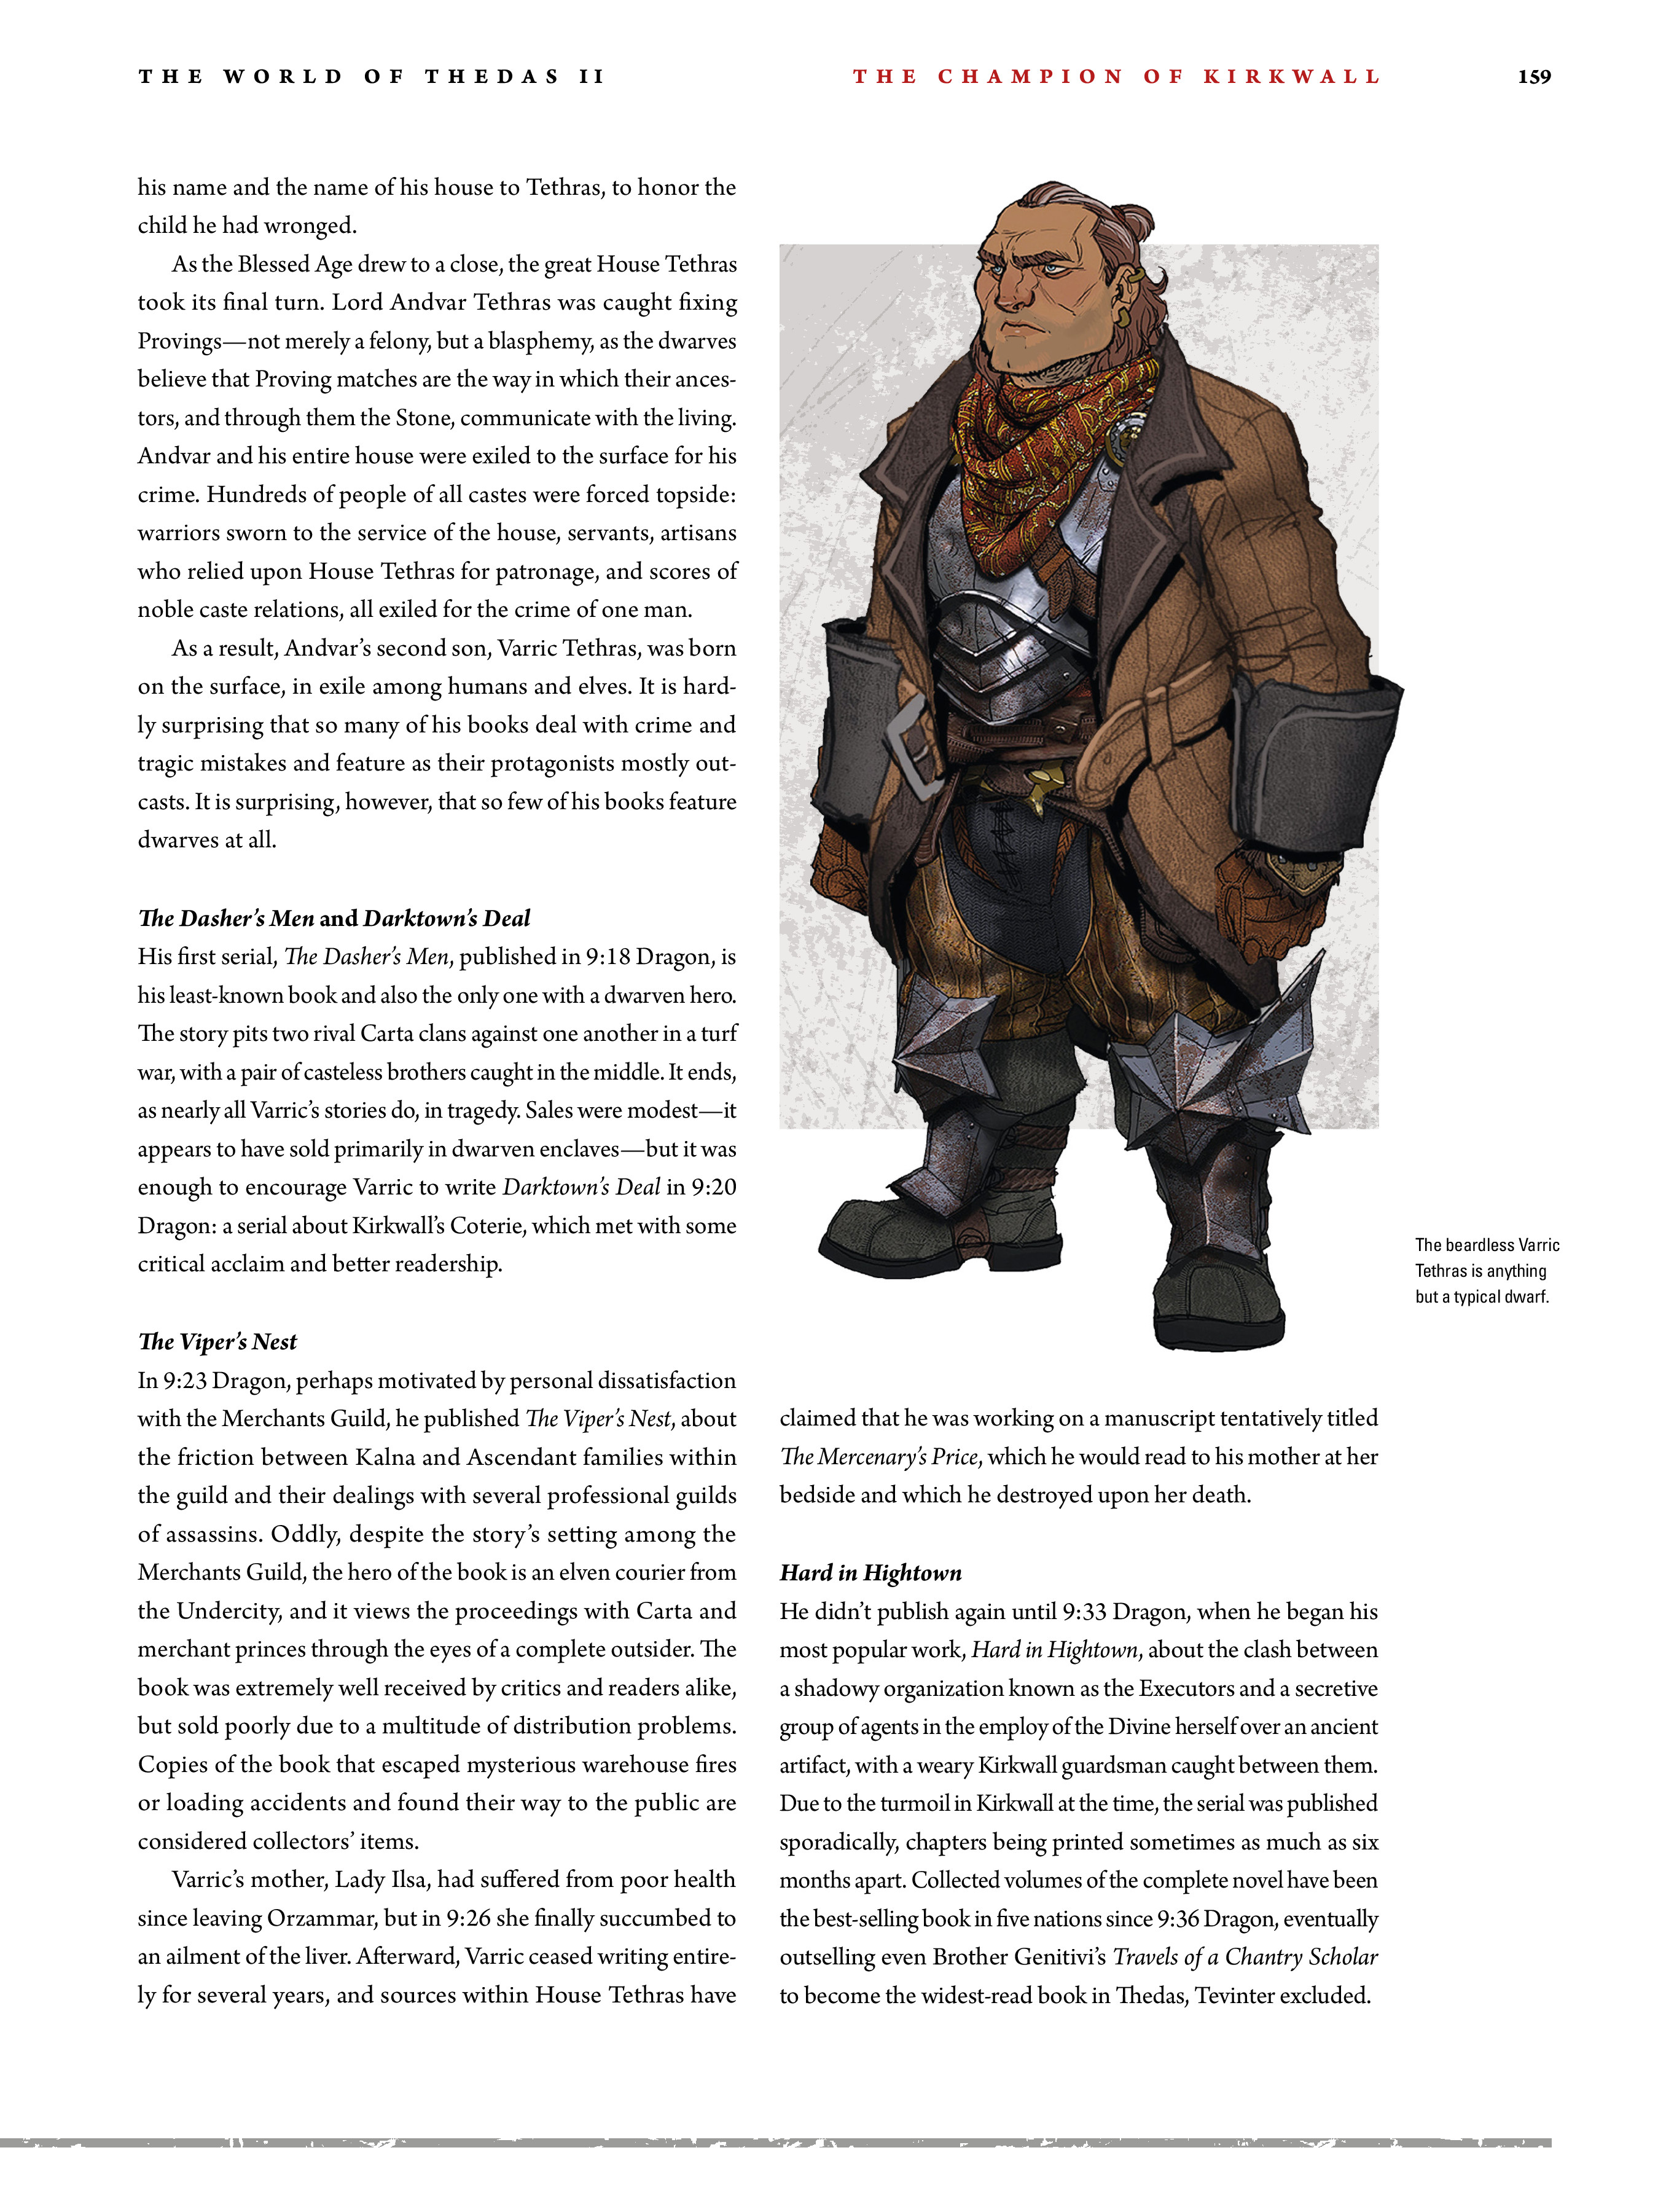 Read online Dragon Age: The World of Thedas comic -  Issue # TPB 2 - 155